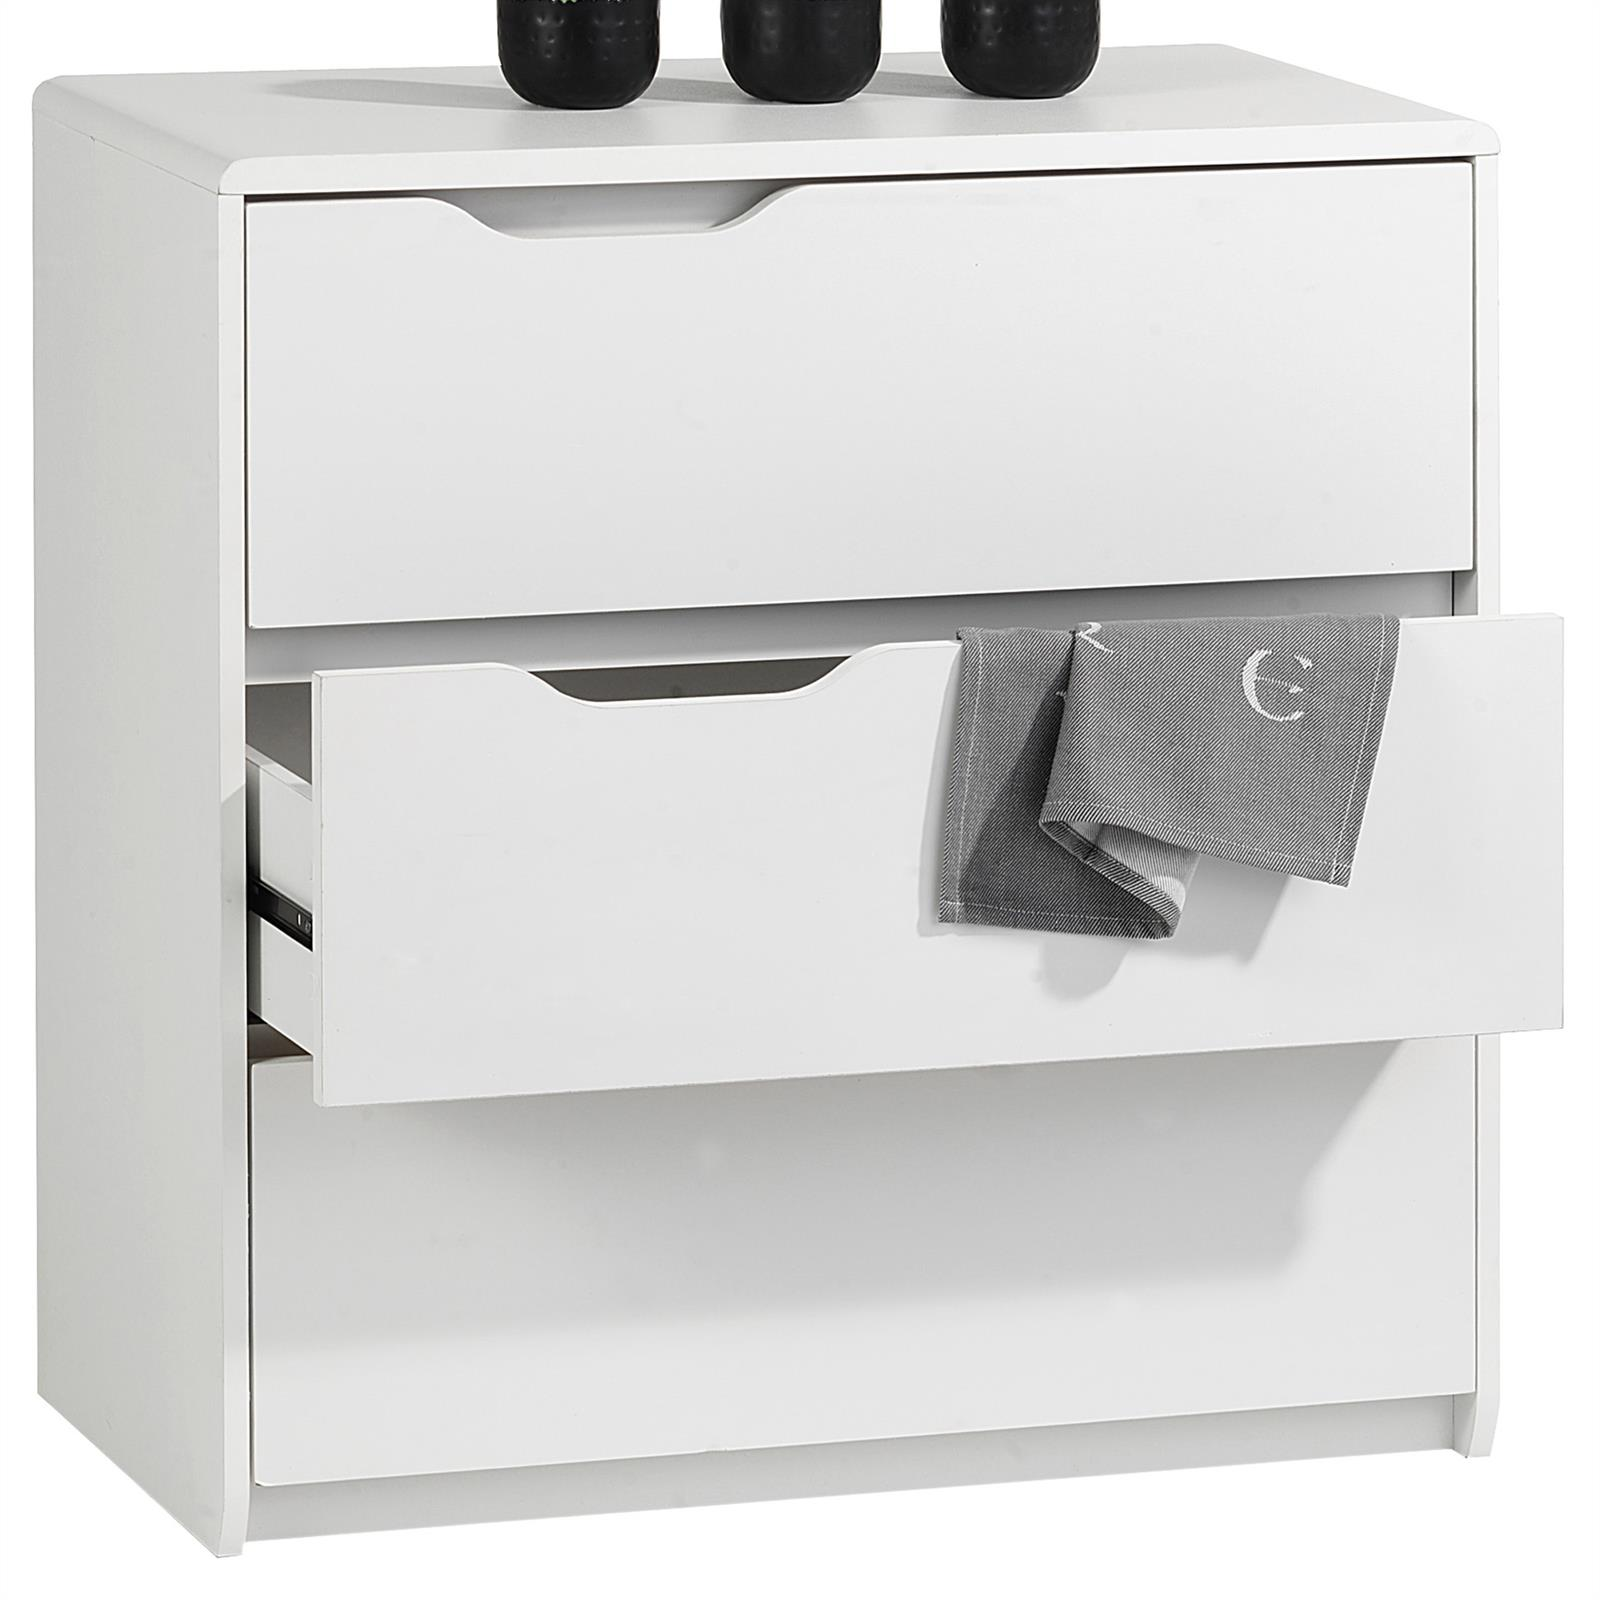 kommode schuhschrank schubladen sideboard anrichte design m bel in weiss eur 79 95 picclick de. Black Bedroom Furniture Sets. Home Design Ideas